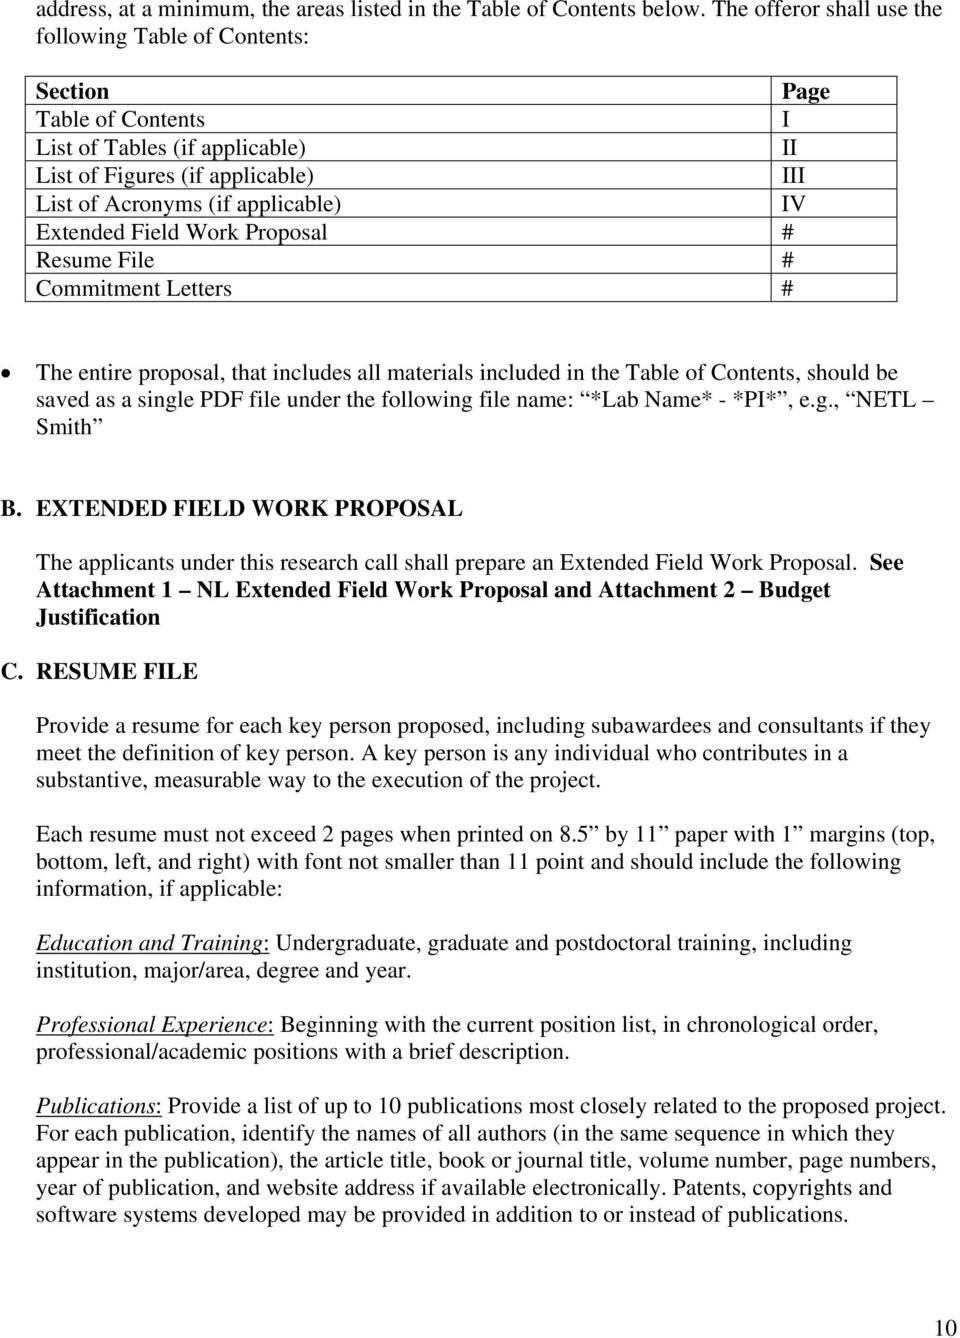 Extended Field Work Proposal # Resume File # Commitment Letters # The entire proposal, that includes all materials included in the Table of Contents, should be saved as a single PDF file under the